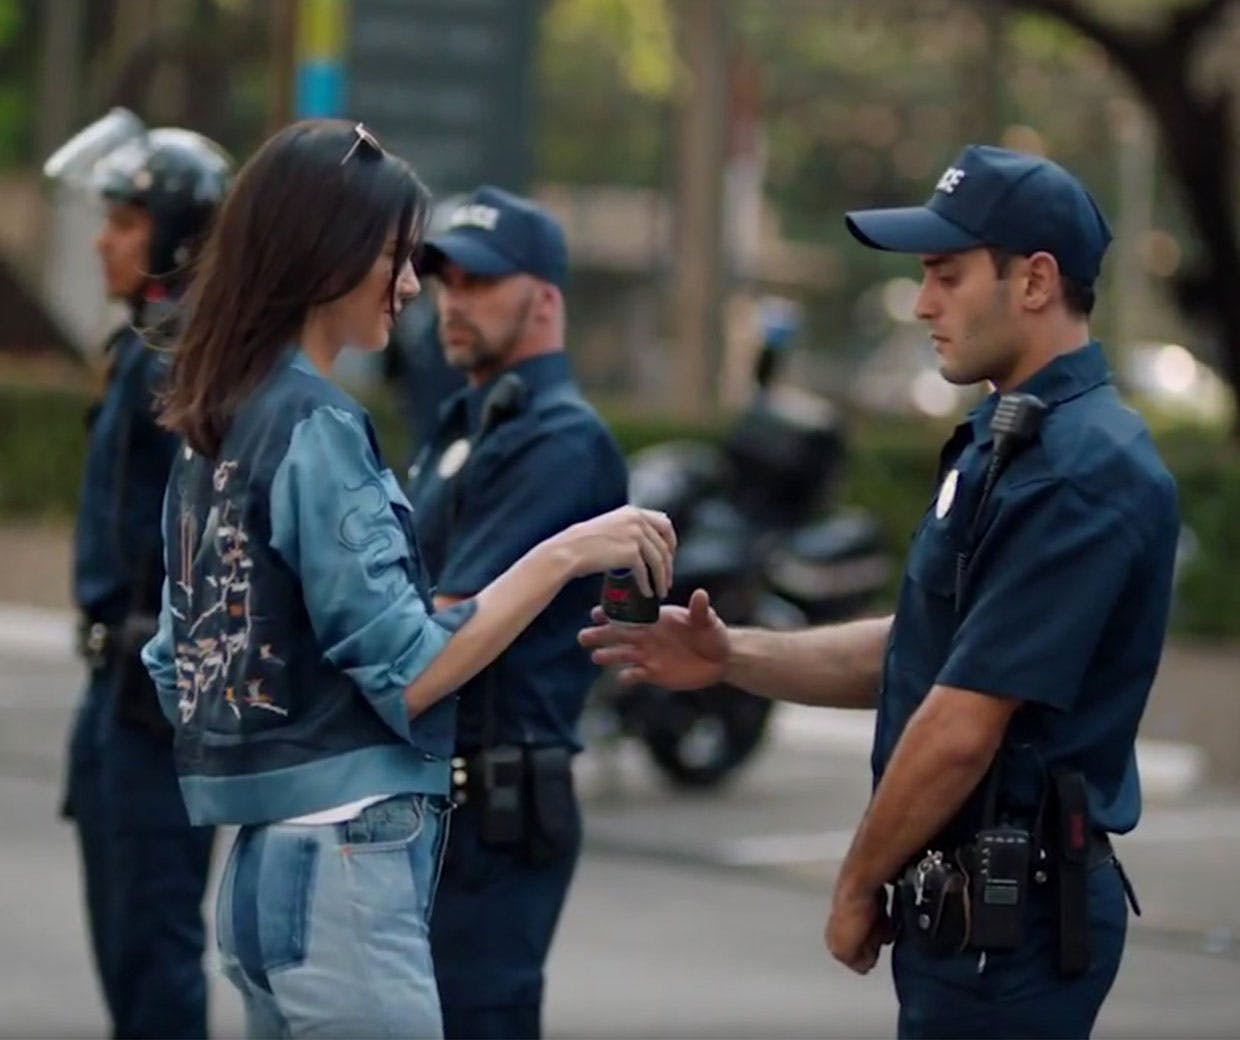 Reducing The Current Global Protest Movement To A Supermodel Handing Out  Cans Of Pepsi Feels Terribly Misjudged, According To Marketing Weeku0027s  Thomas Hobbs.